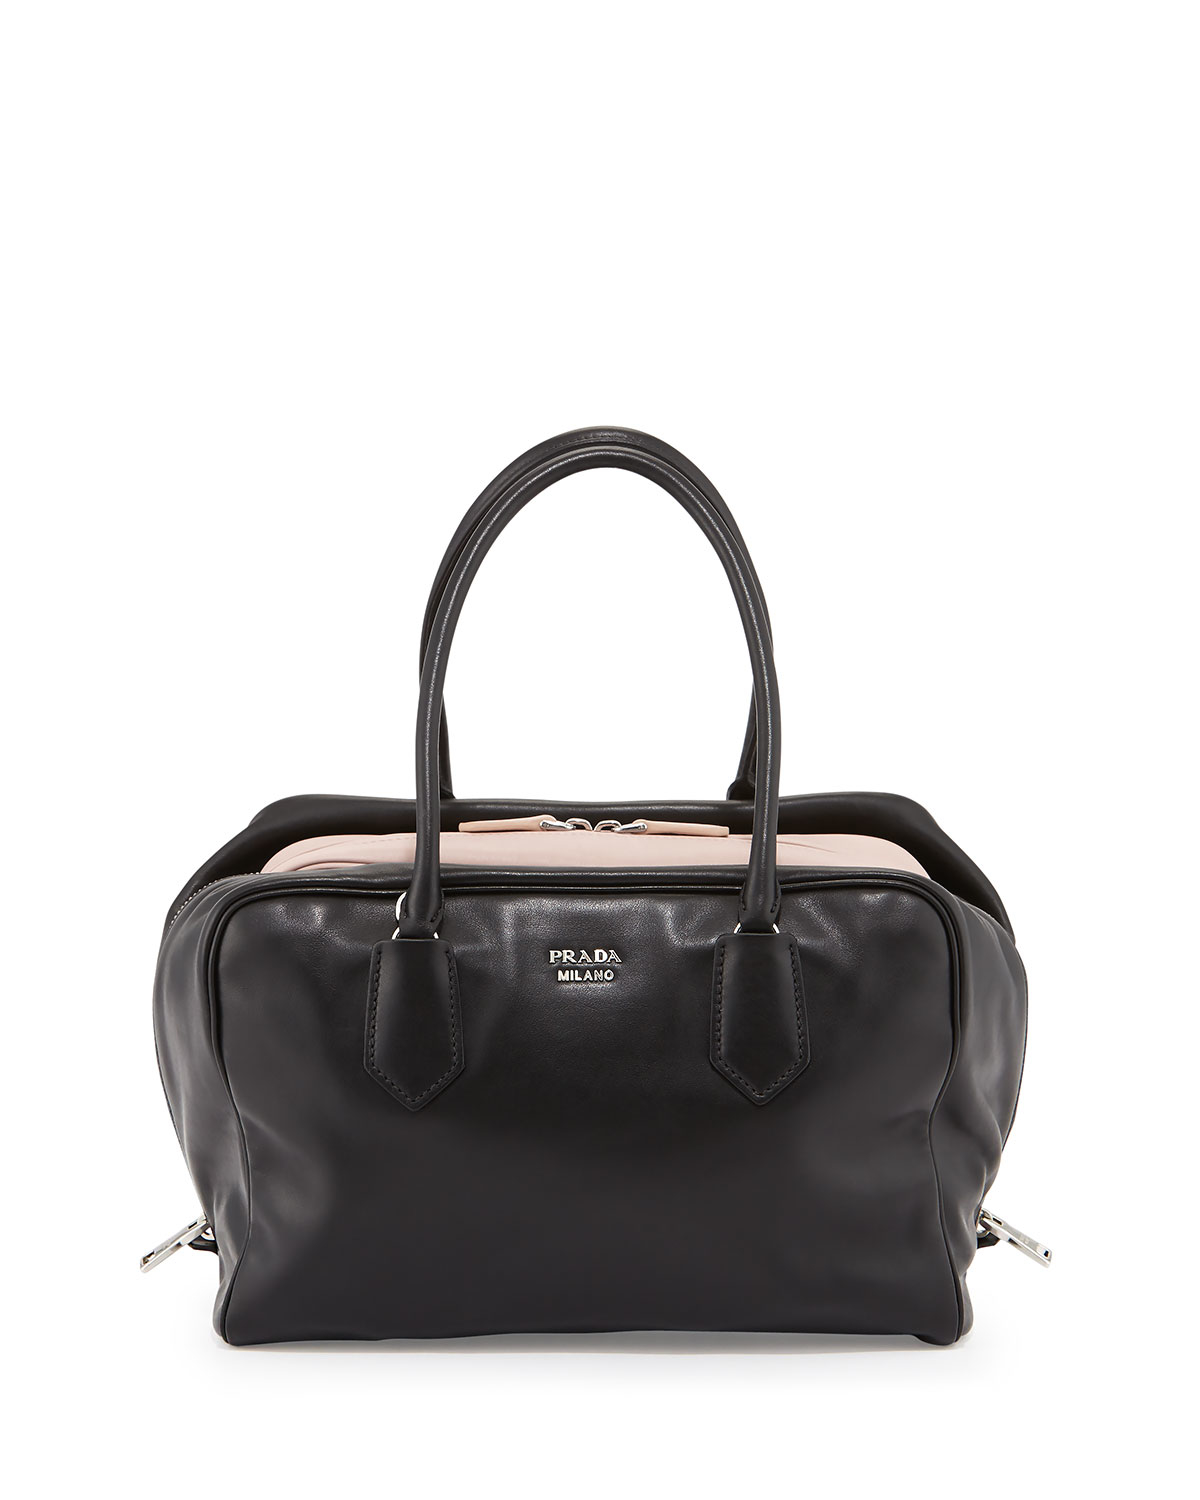 prada handbags usa sale - Prada Large Soft Calf Inside Bag in Black | Lyst